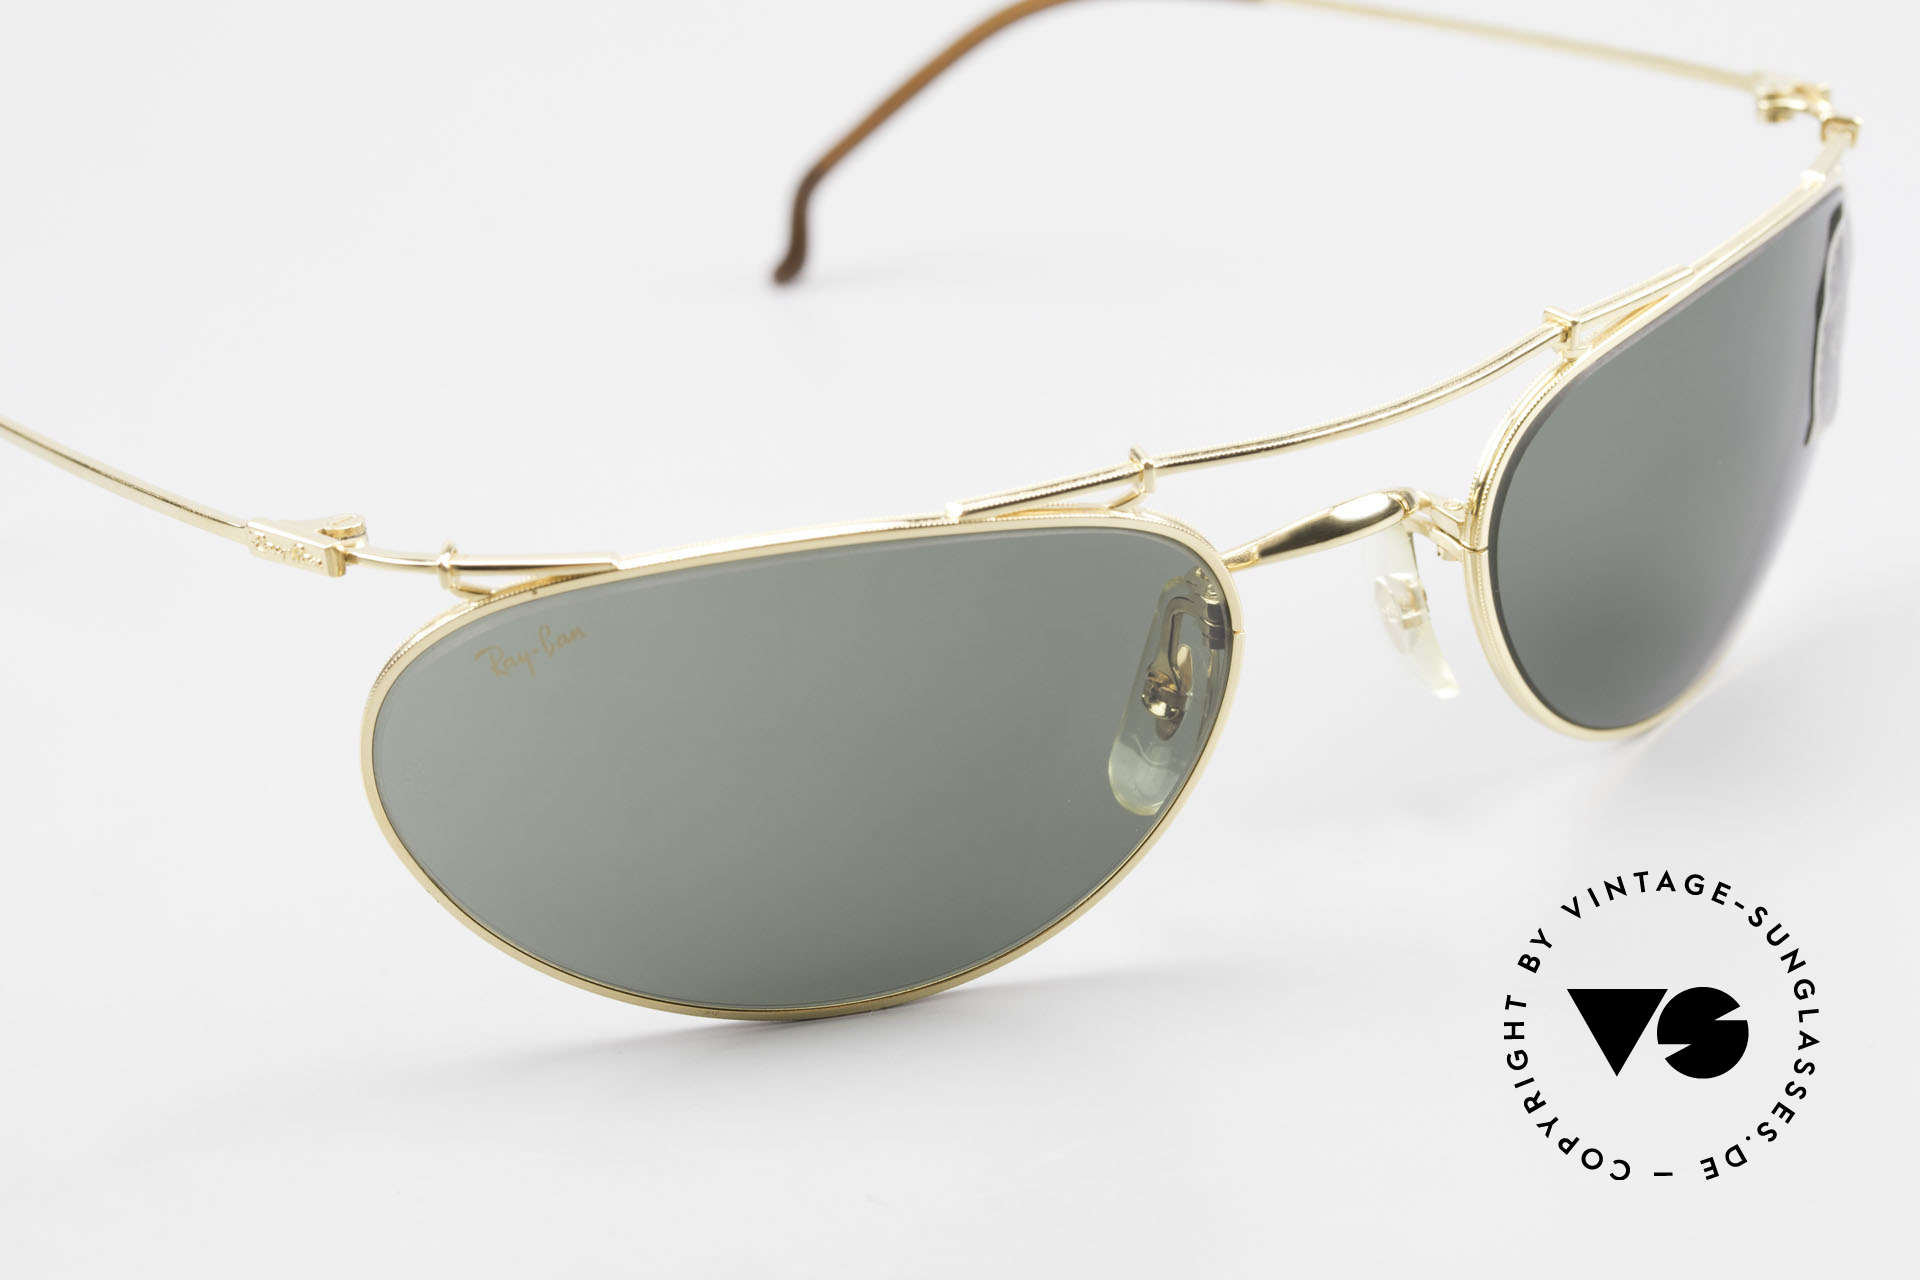 Ray Ban Deco Metals Wrap Old Bausch Lomb Ray-Ban USA, unworn (like all our vintage sunglasses by Ray Ban), Made for Men and Women